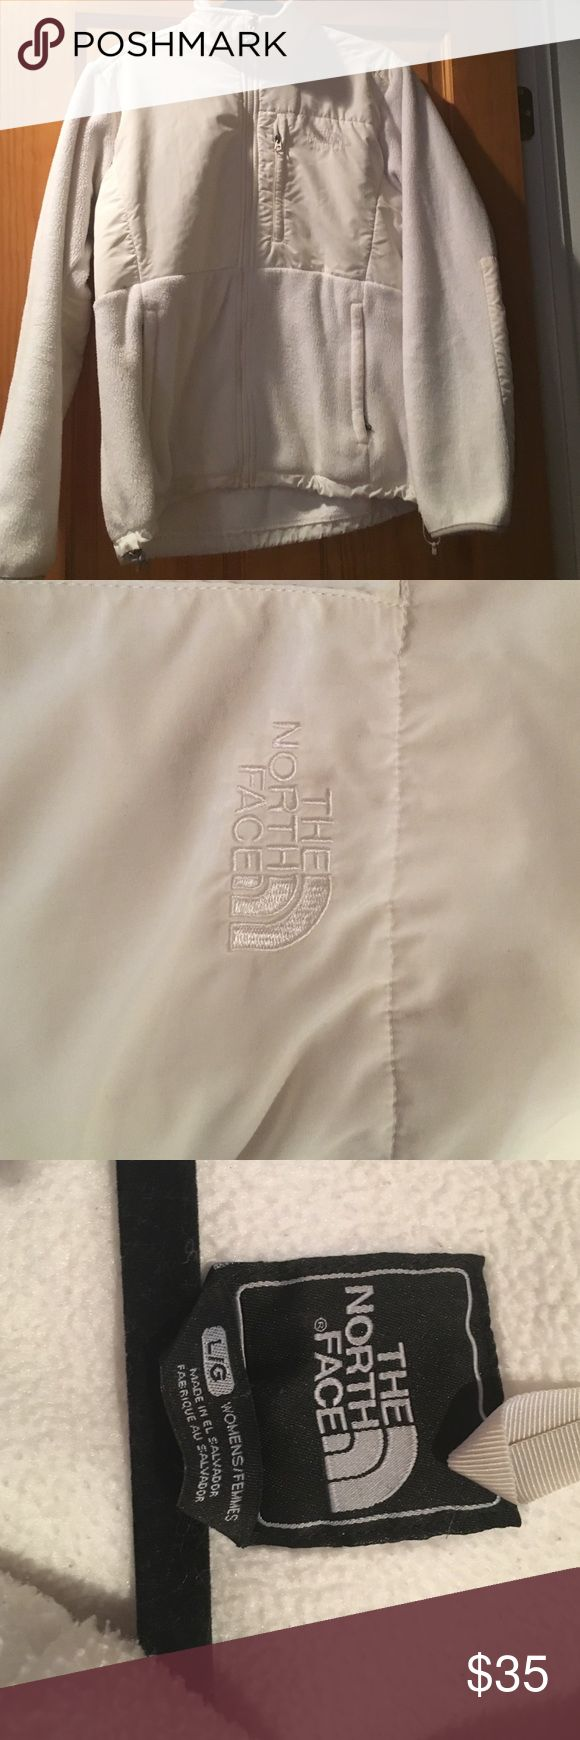 Jacket White north face used but really good condition North Face Jackets & Coats